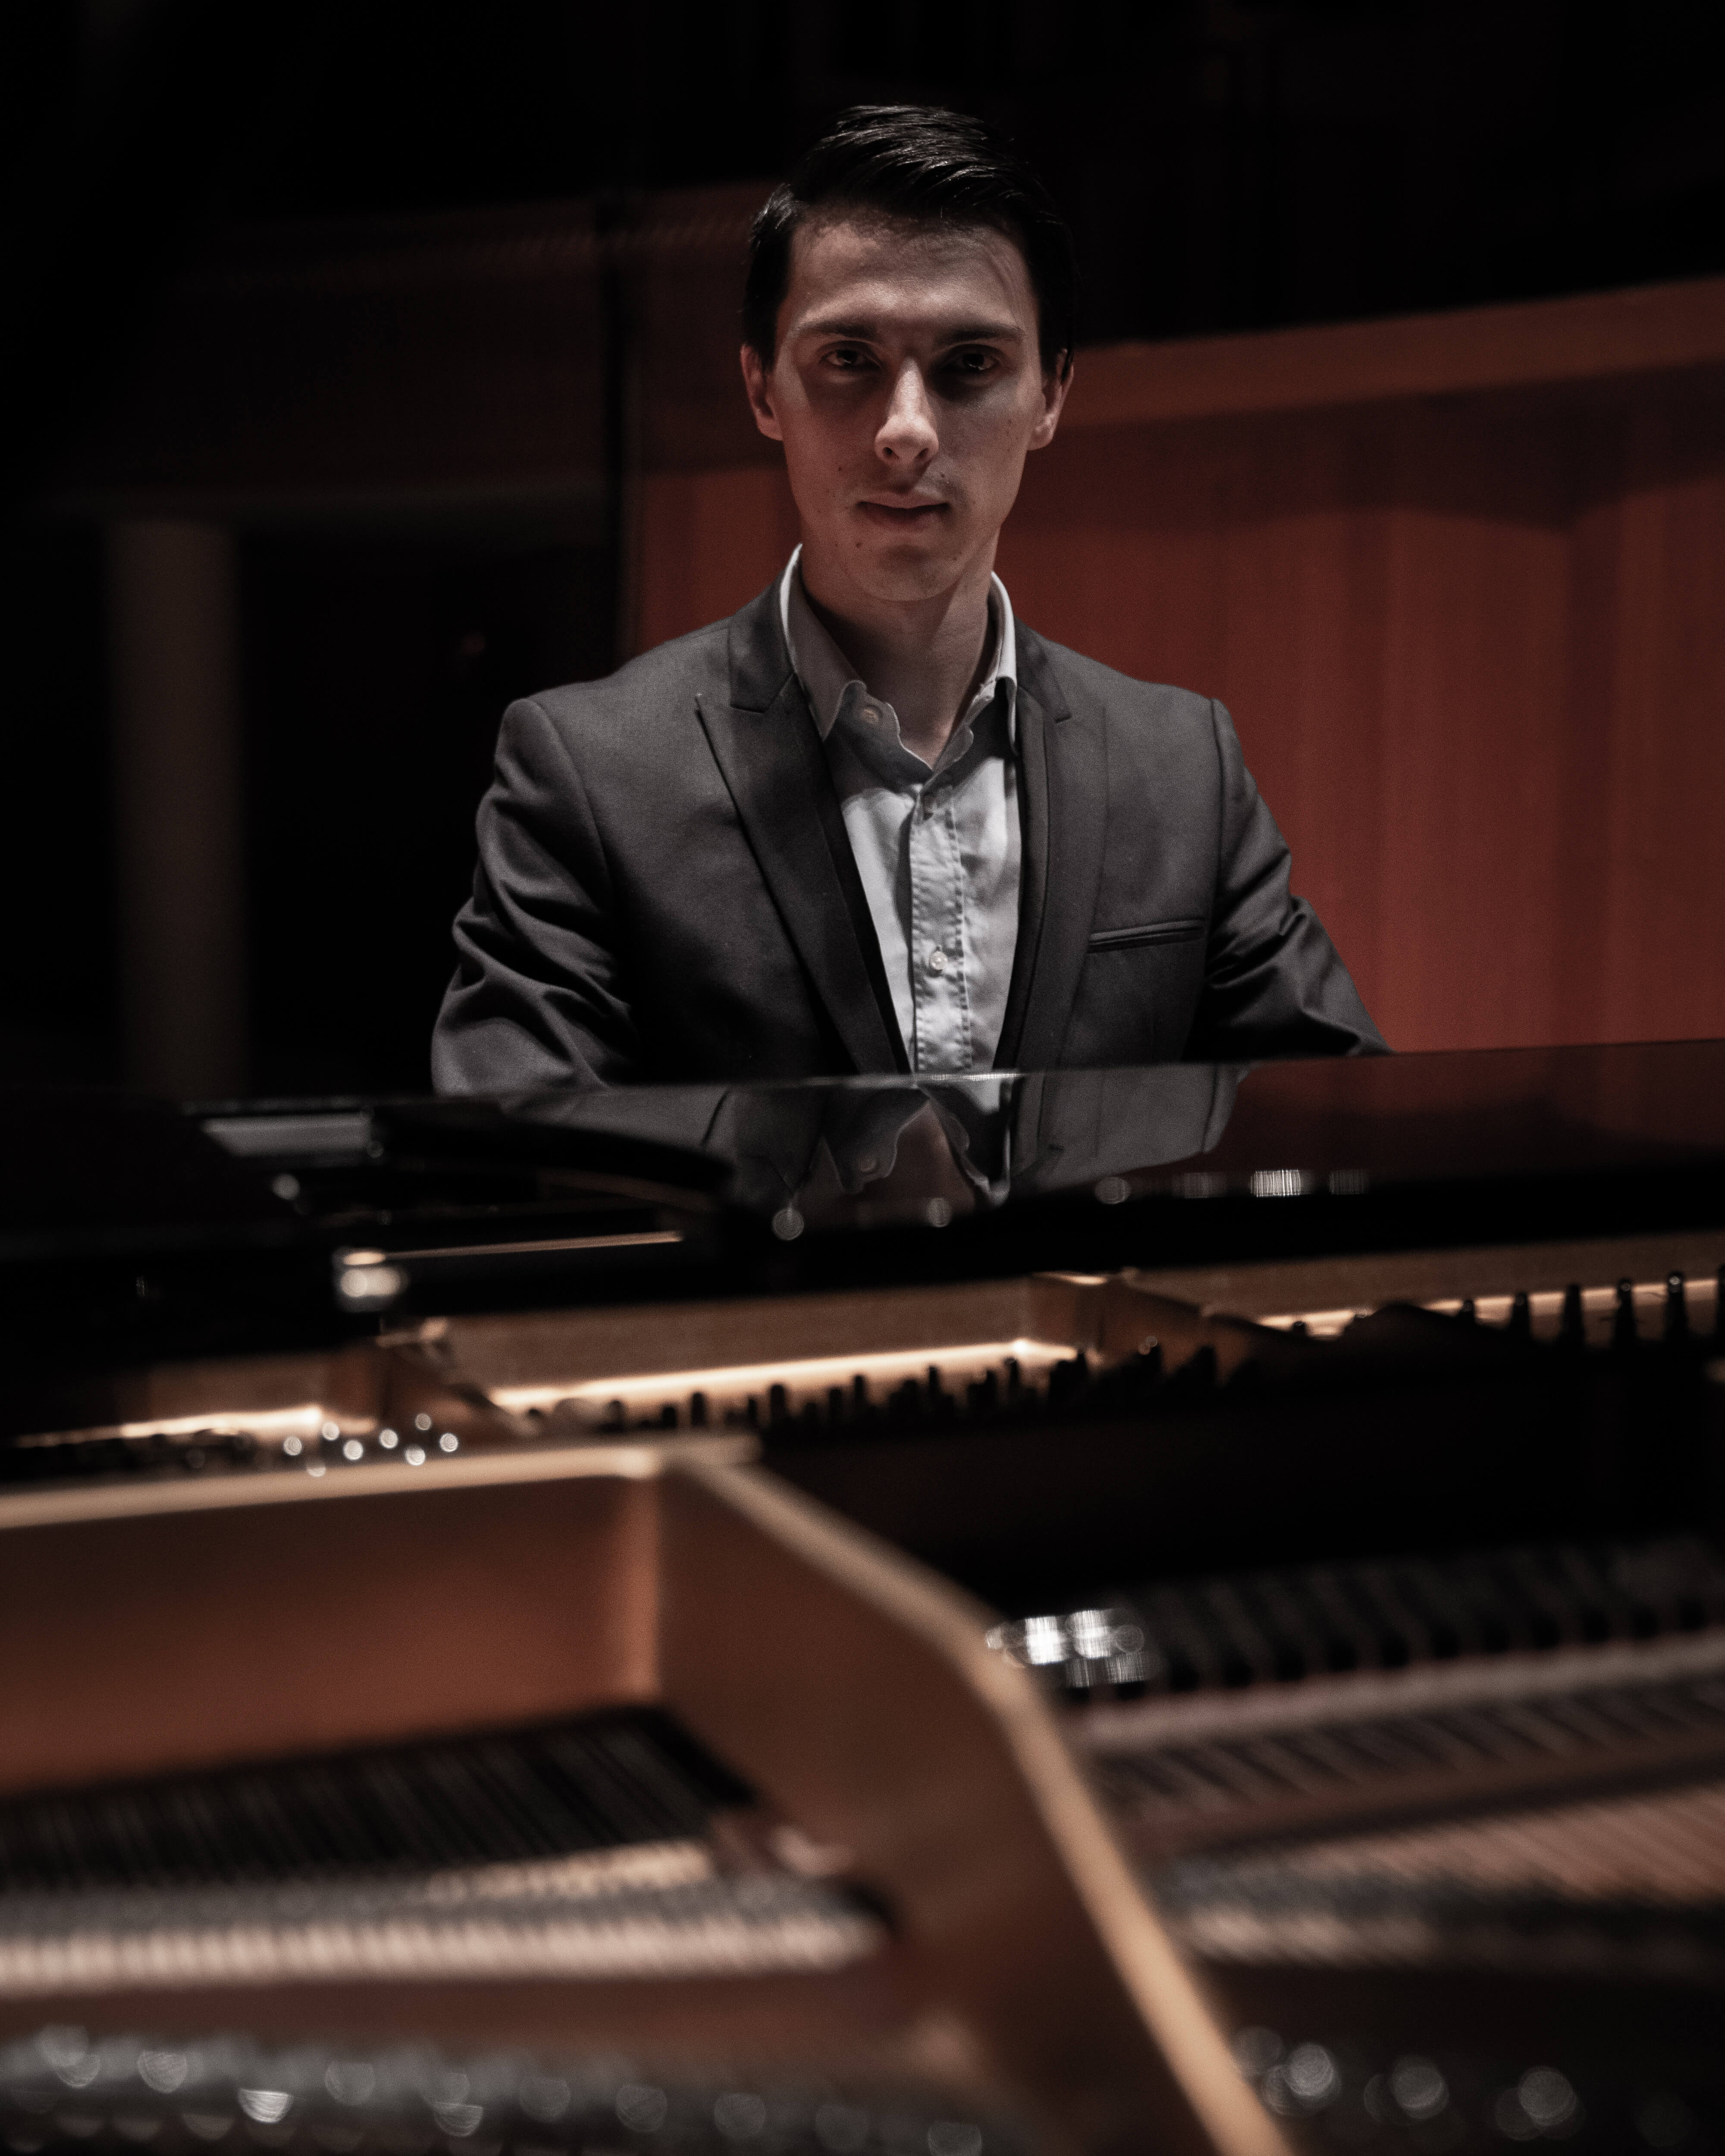 A pianist photographed through the lid of a grand Steinway & Sons piano.